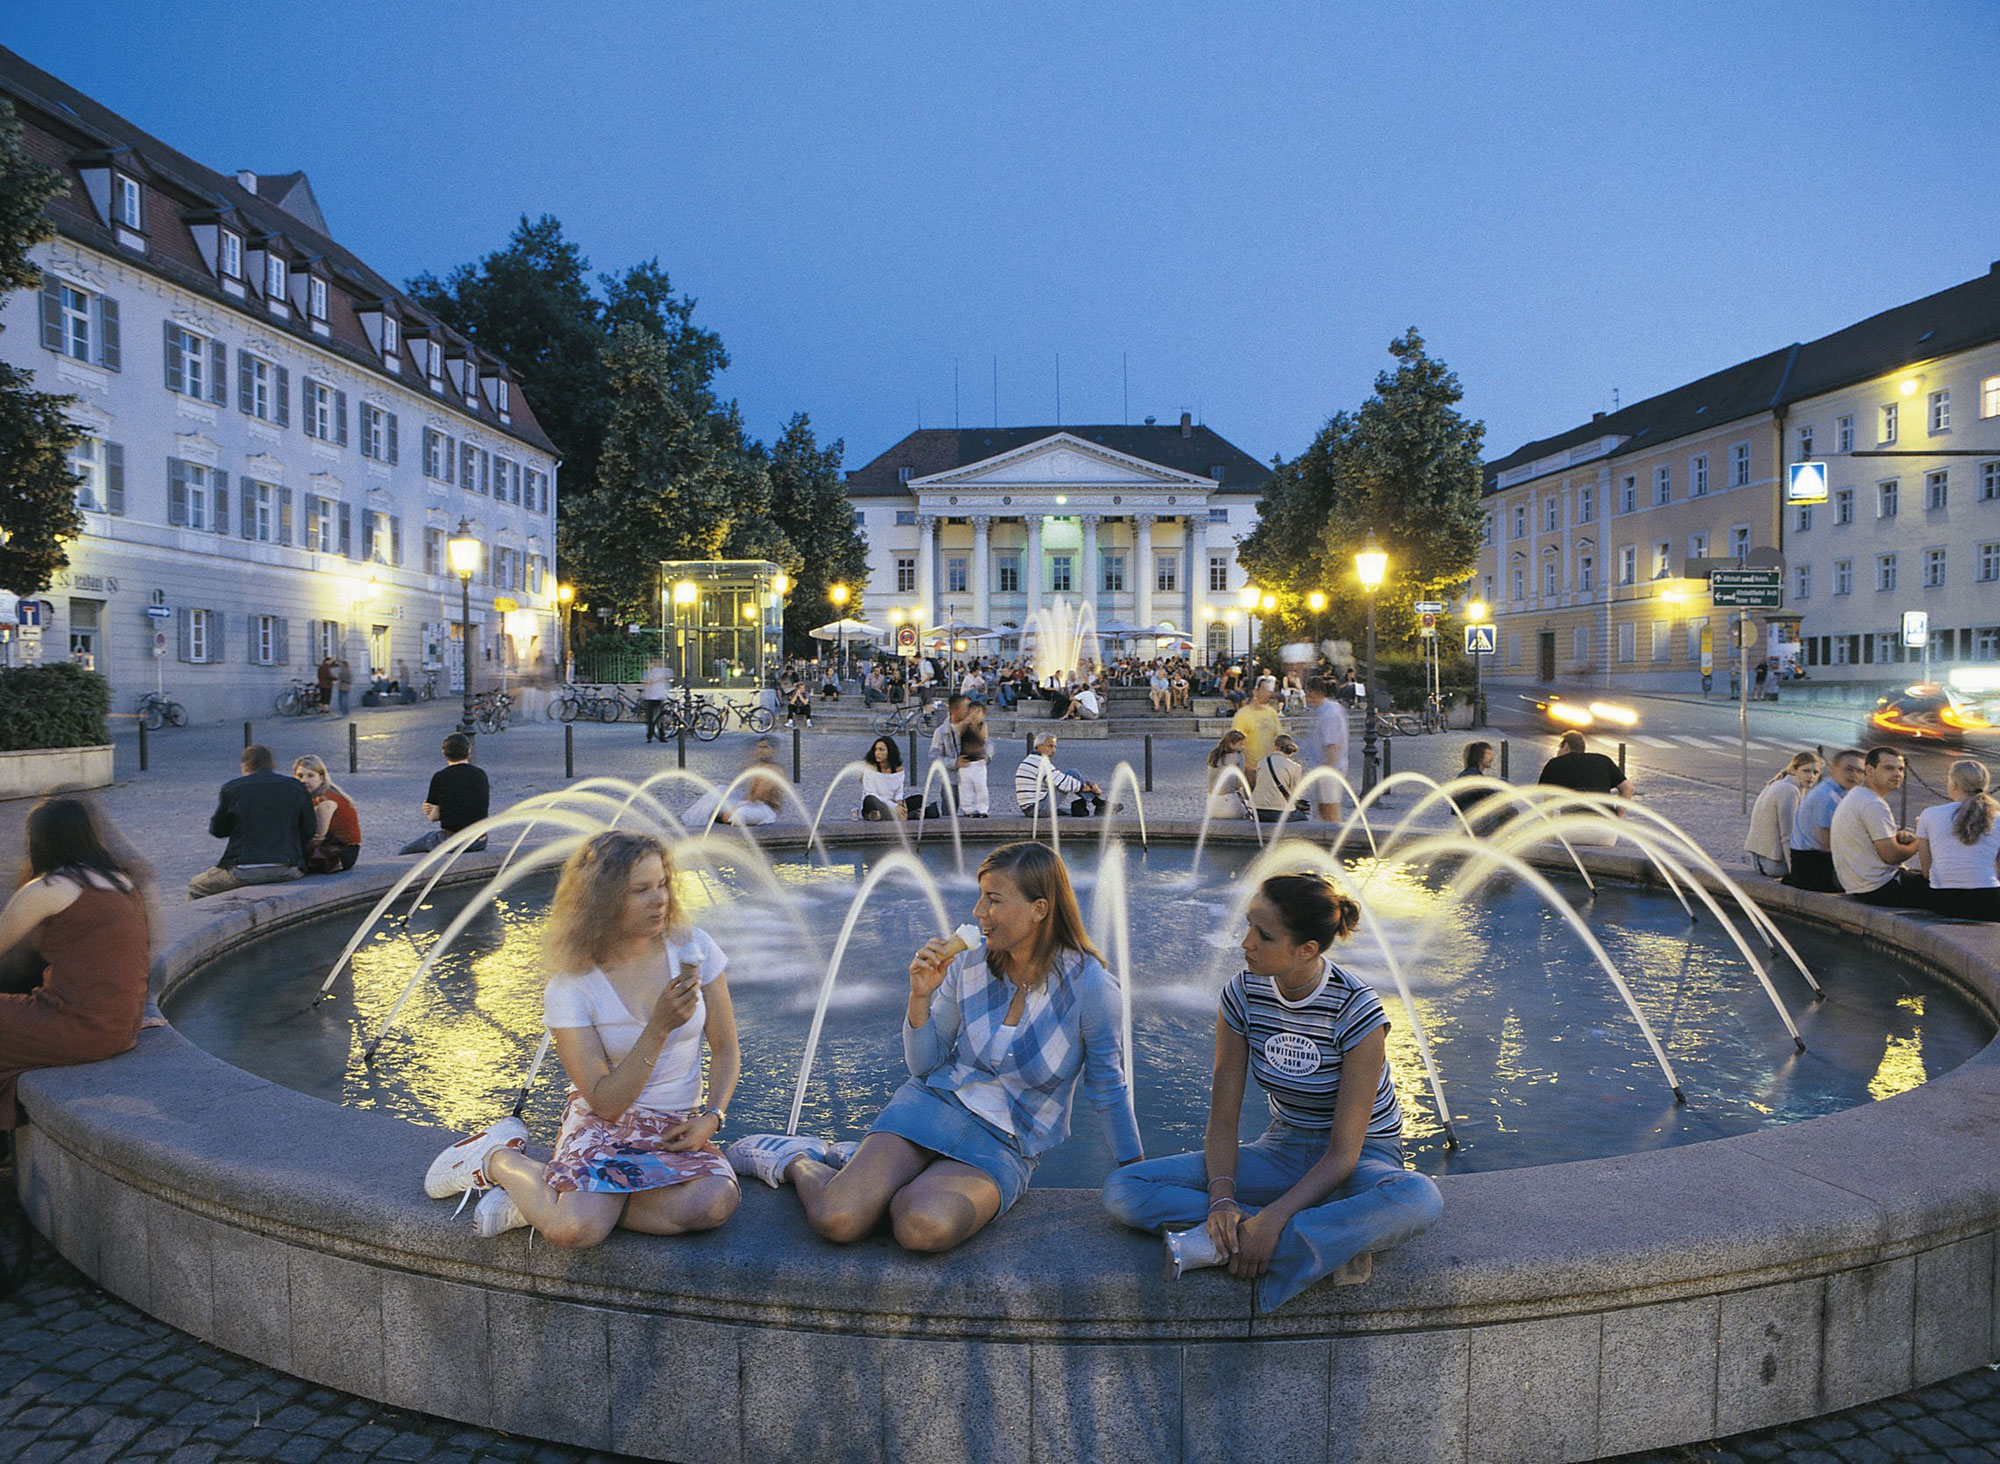 The town is characterised by its special and – despite its age - youthful charm